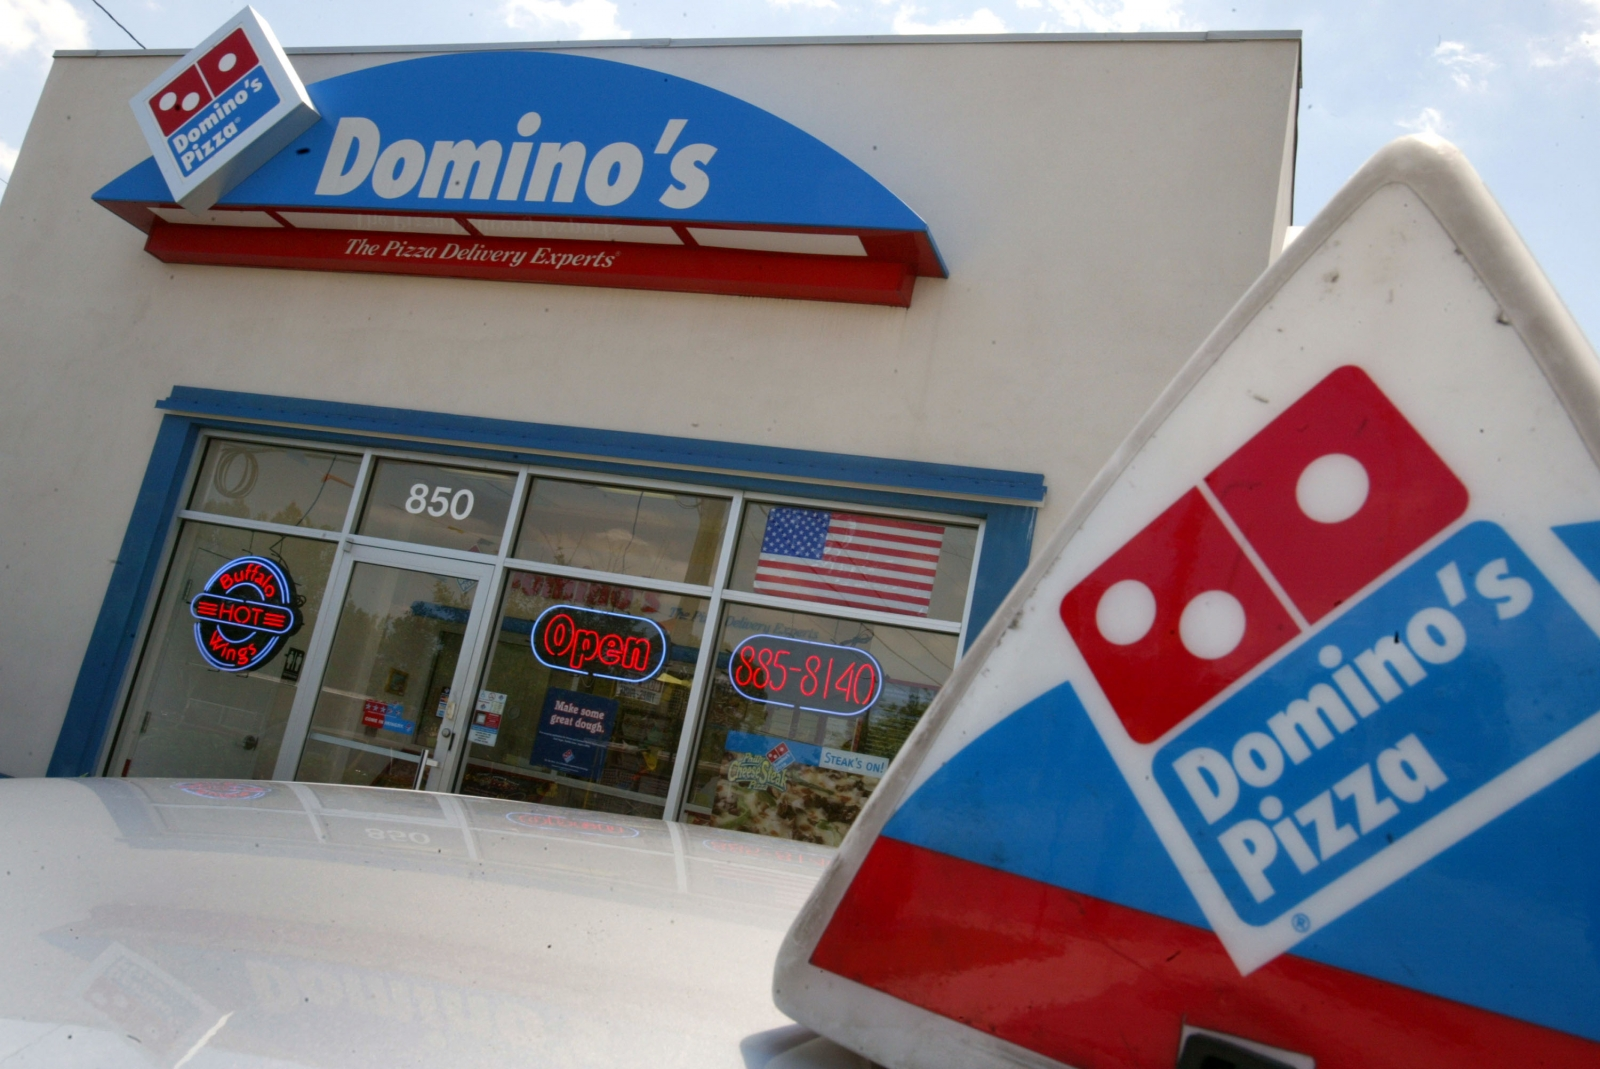 Domino's ends free pizza deal with T-mobile